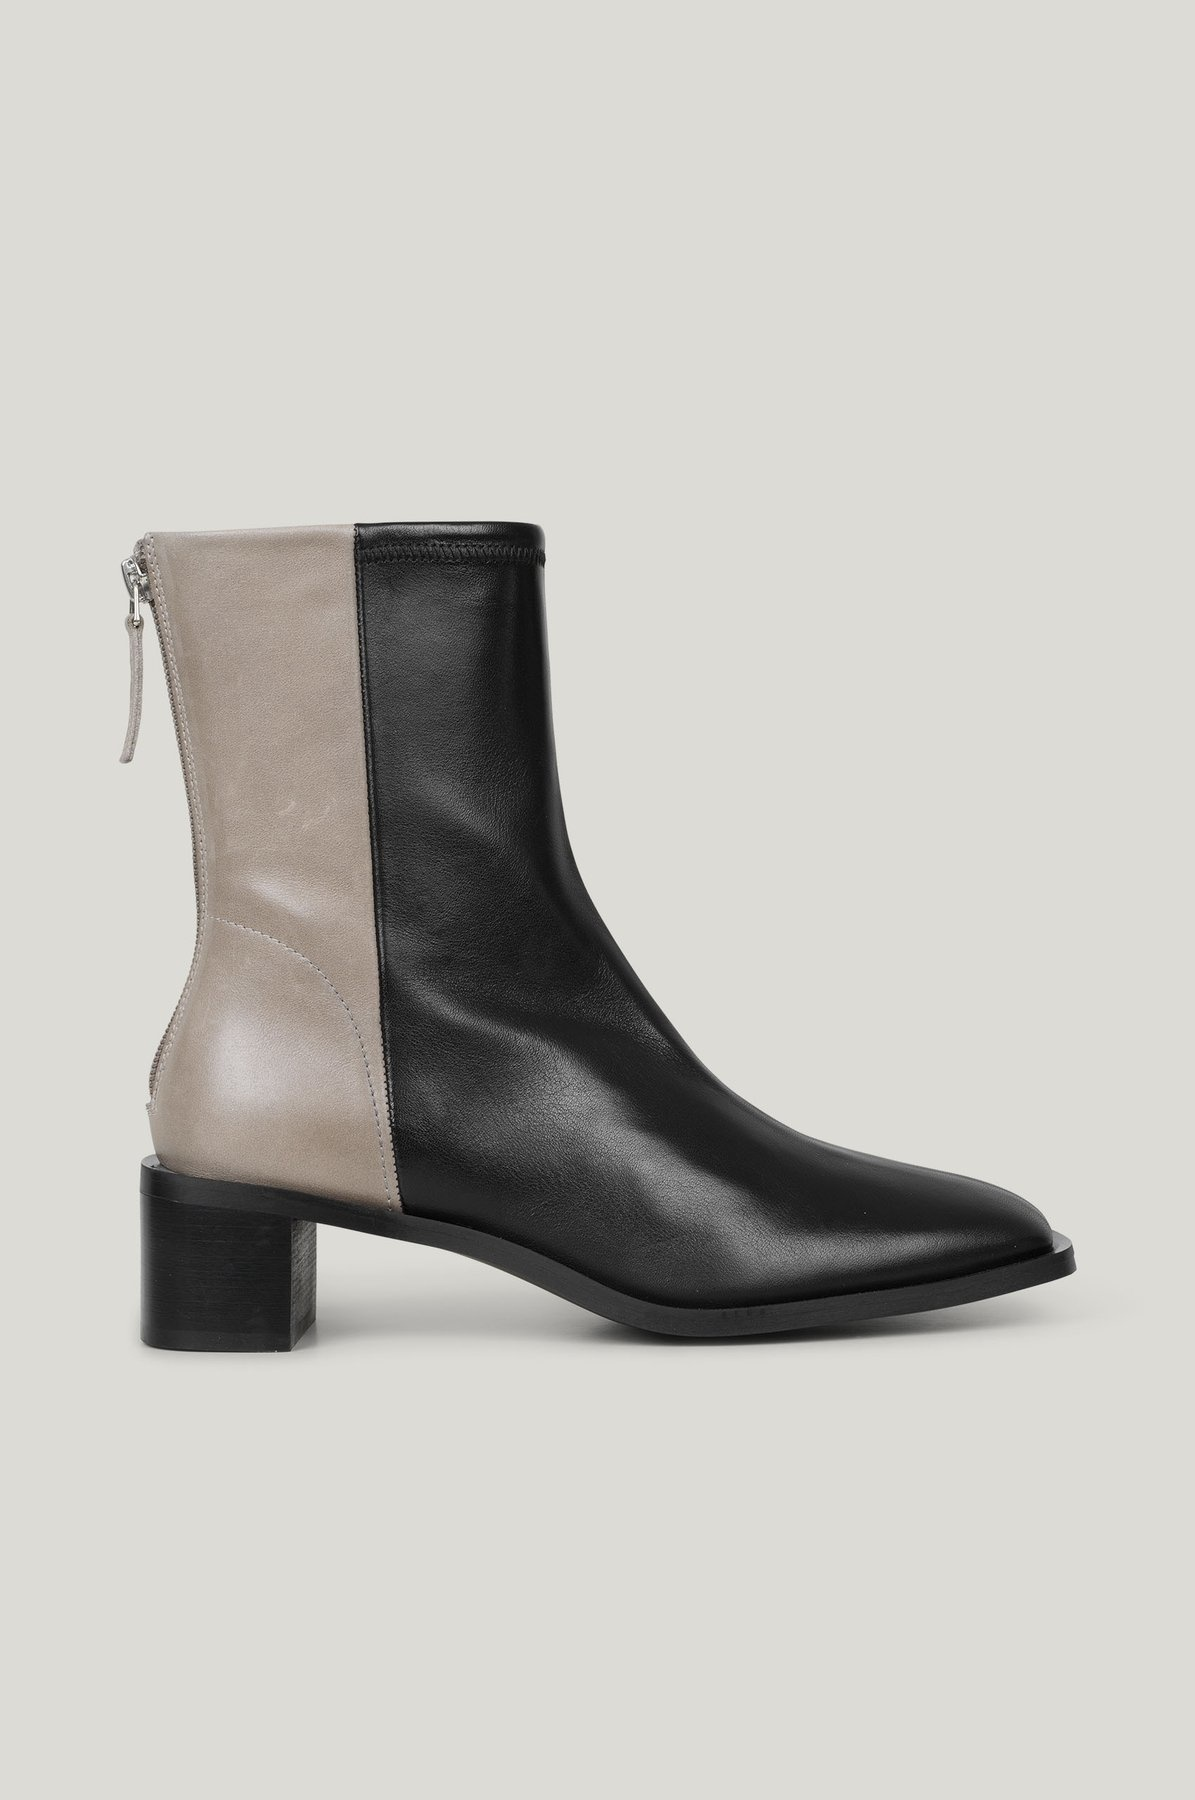 JUST FEMALE bottines porto-1